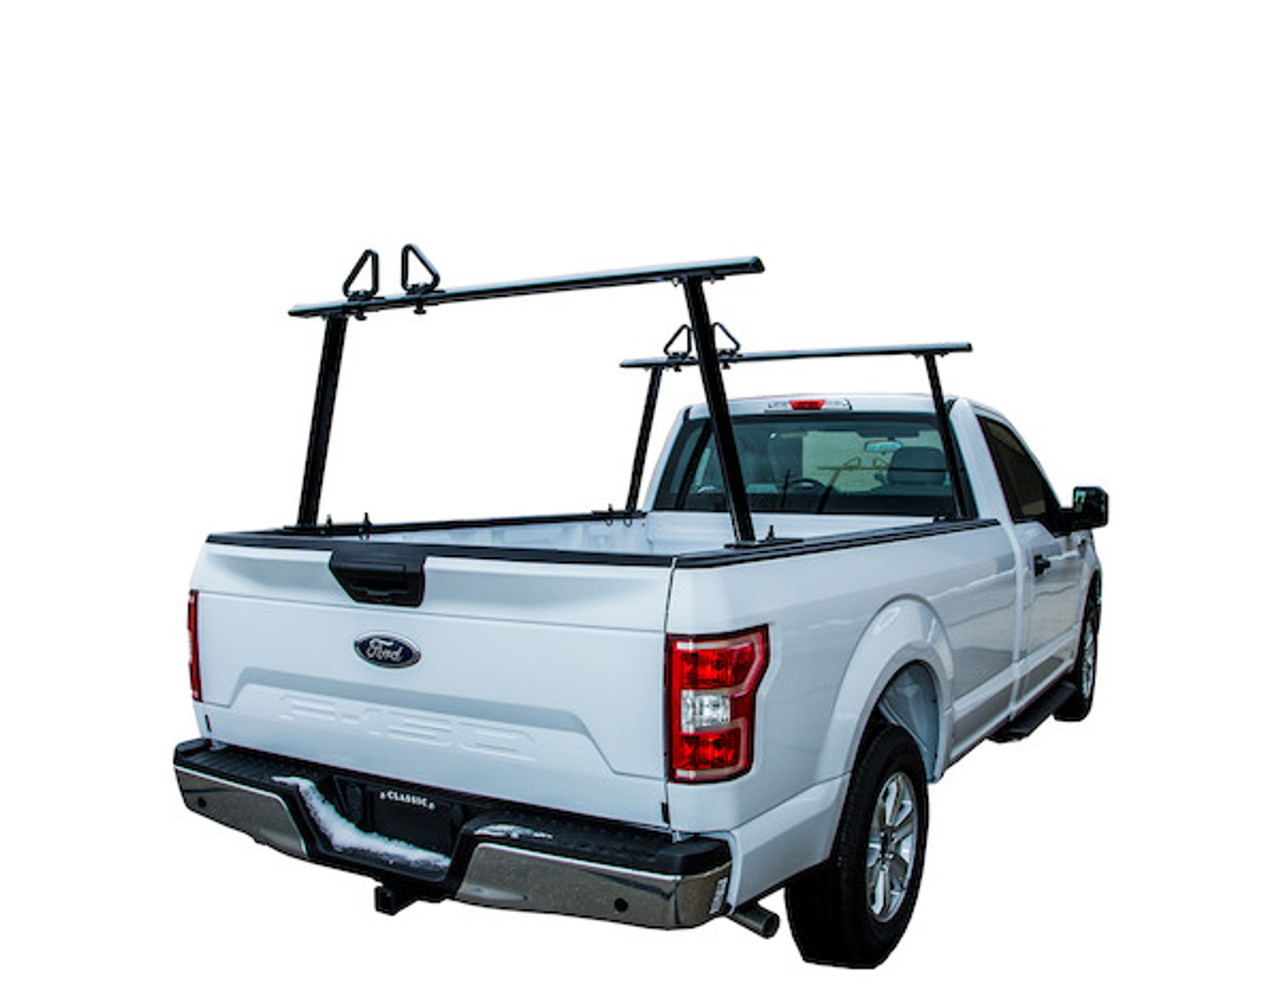 BUYERS 1501680 Black Aluminum Truck Rack for Contractors, Construction, Electricians Picture # 5